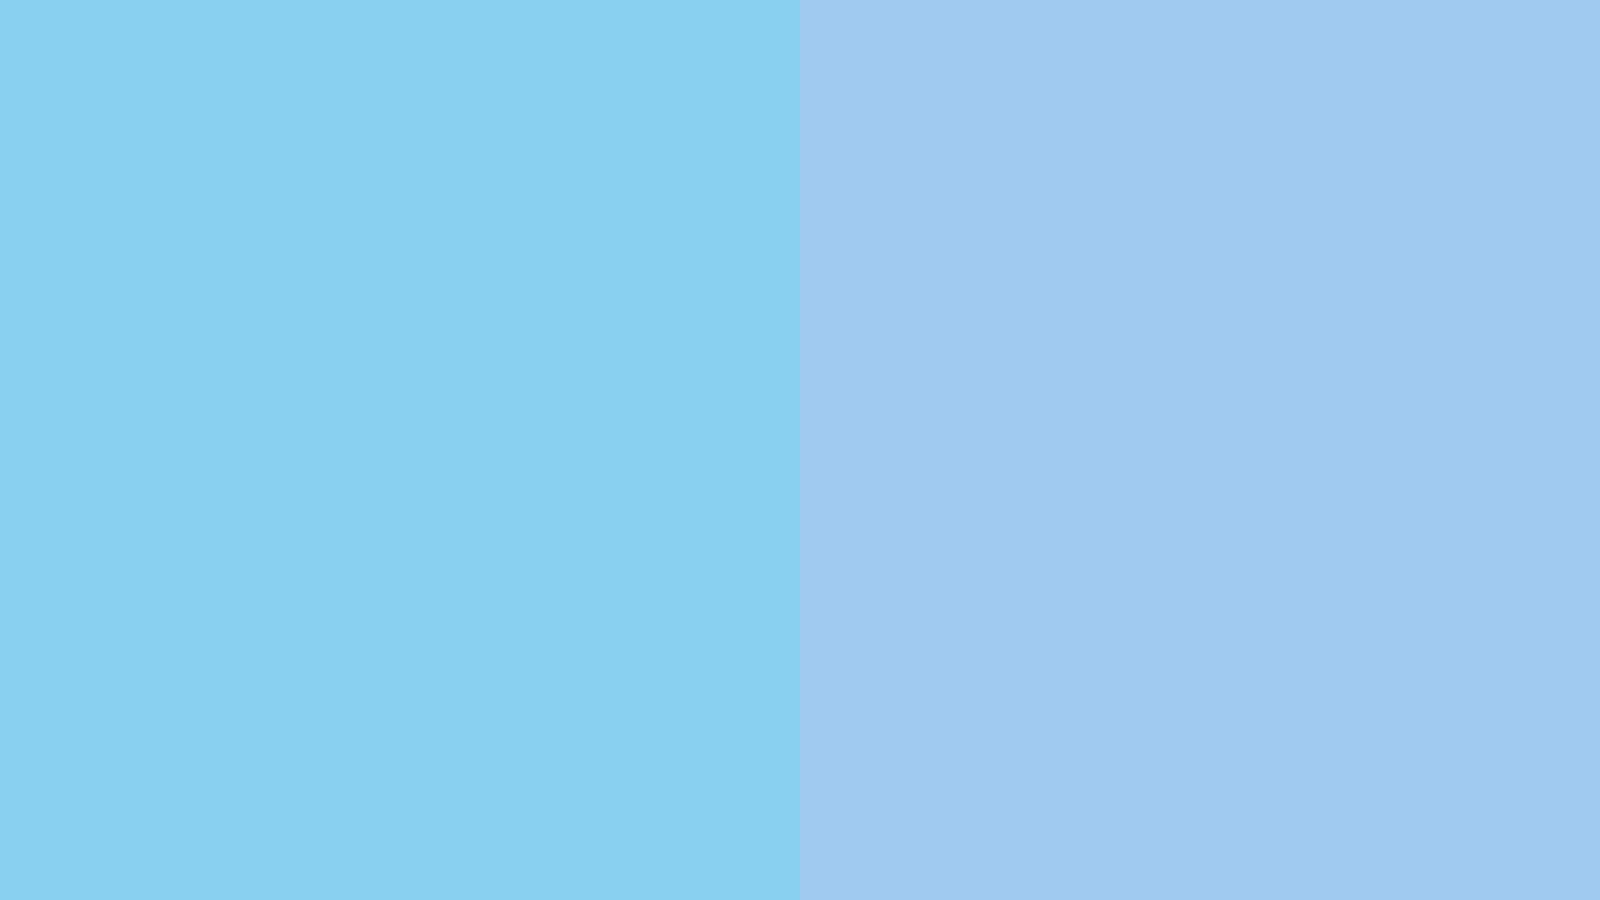 resolution Baby Blue and Baby Blue Eyes solid two color background 1600x900